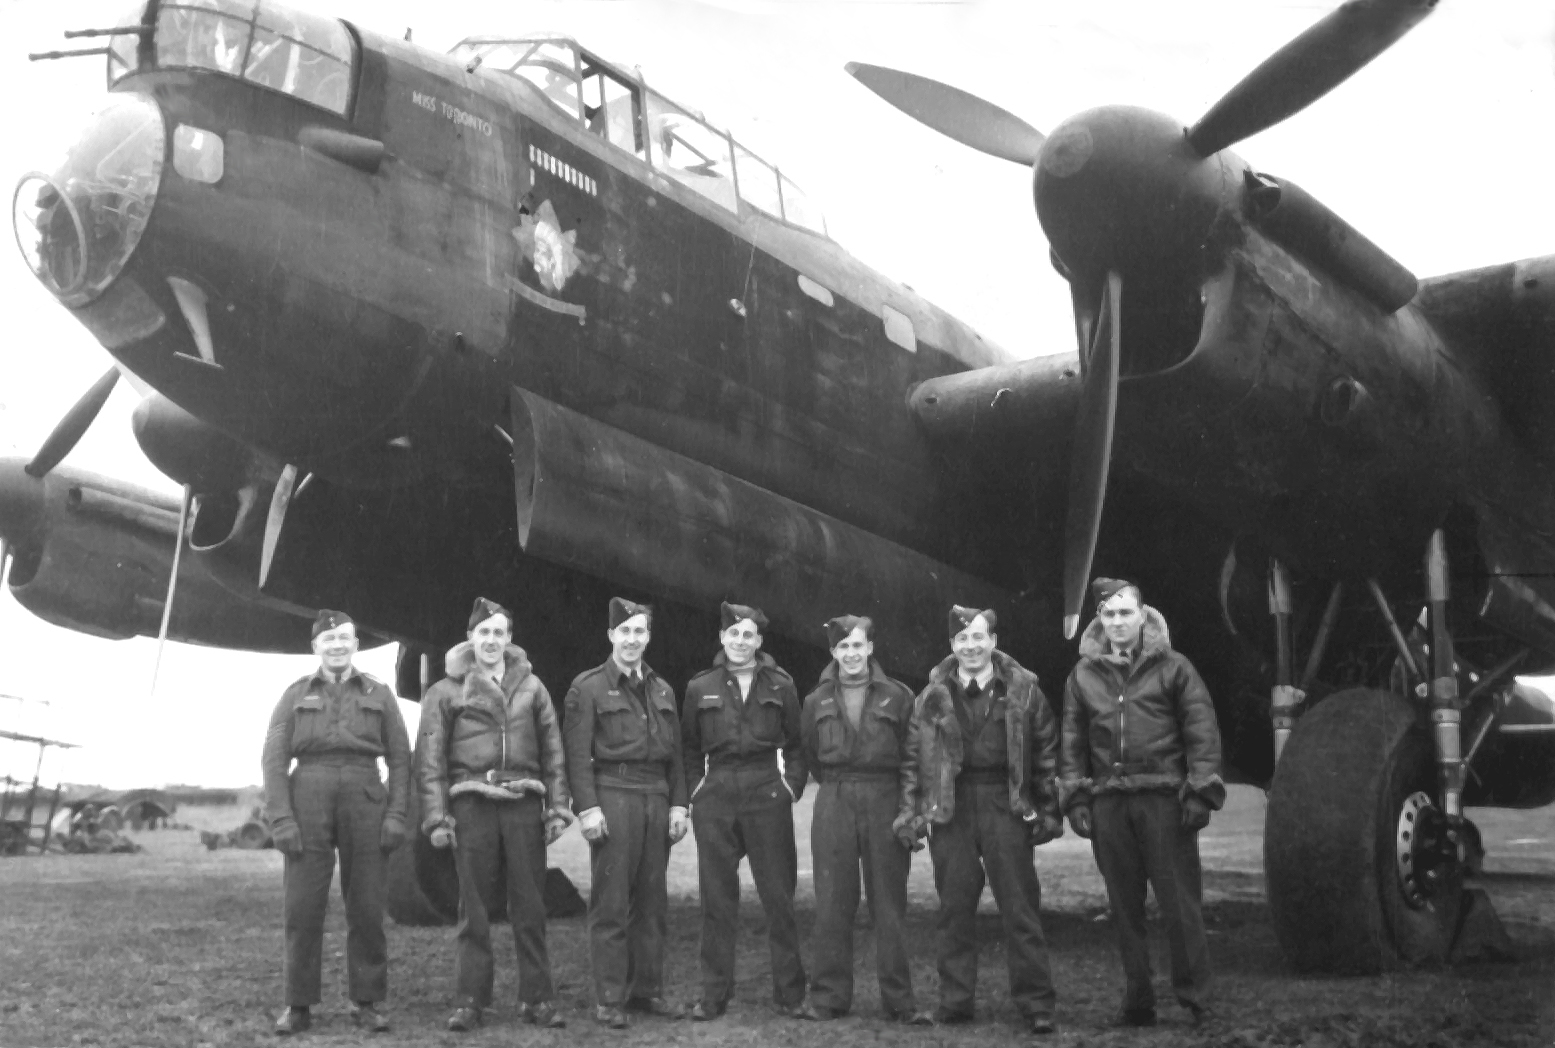 https://dambusters.files.wordpress.com/2011/03/hill-9-sqn-lancaster-and-crew-copy.jpg